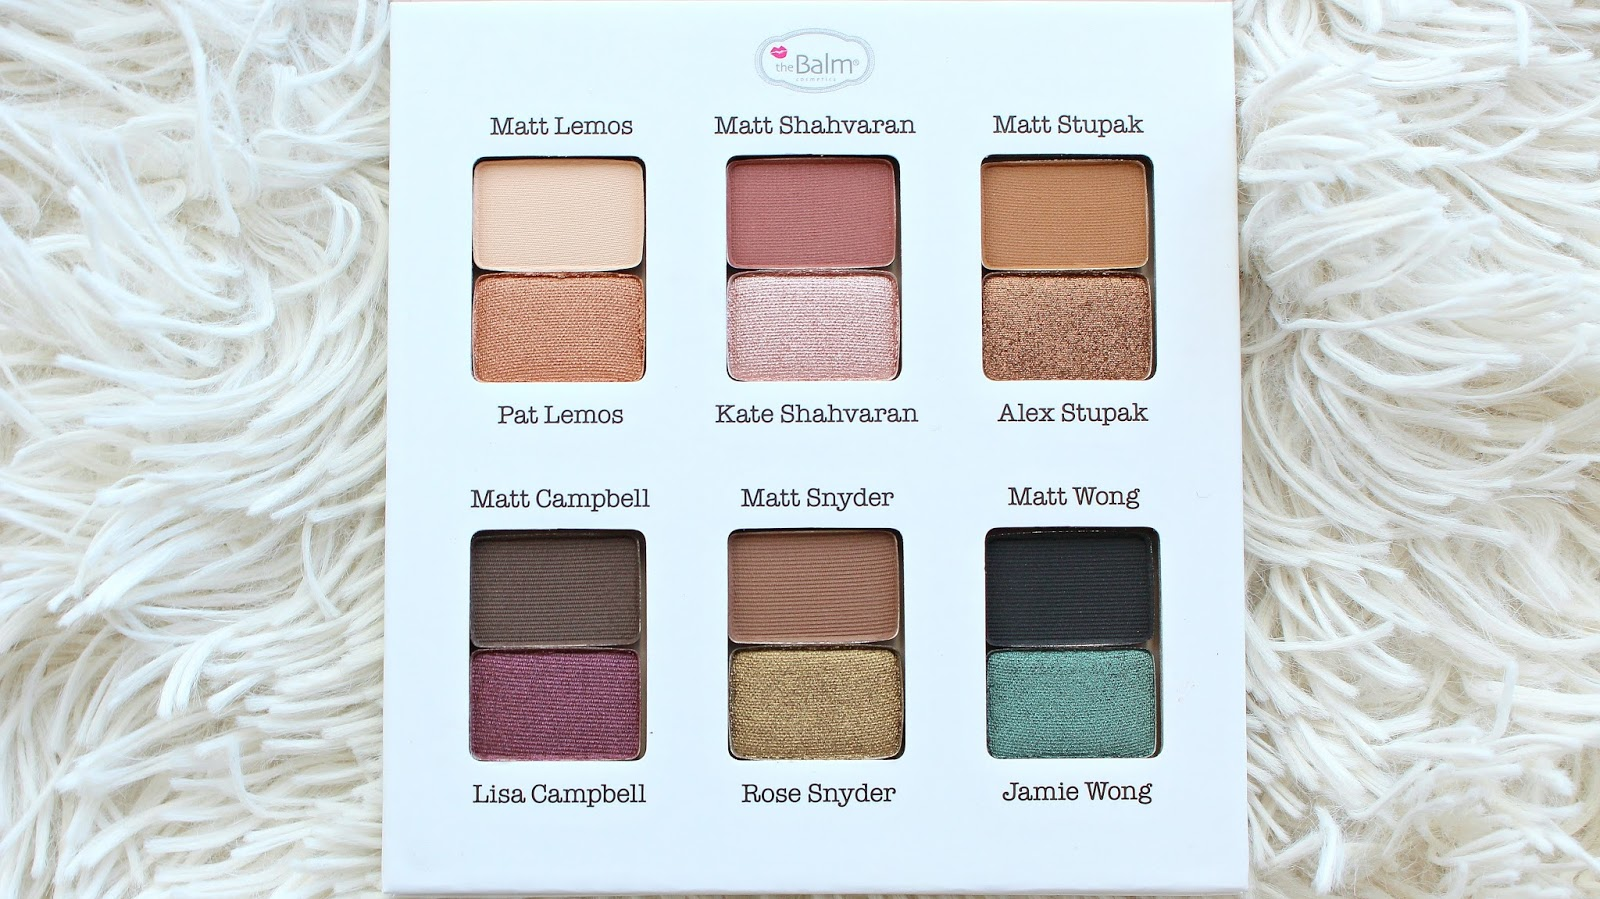 the balm meet matte palette swatches of color